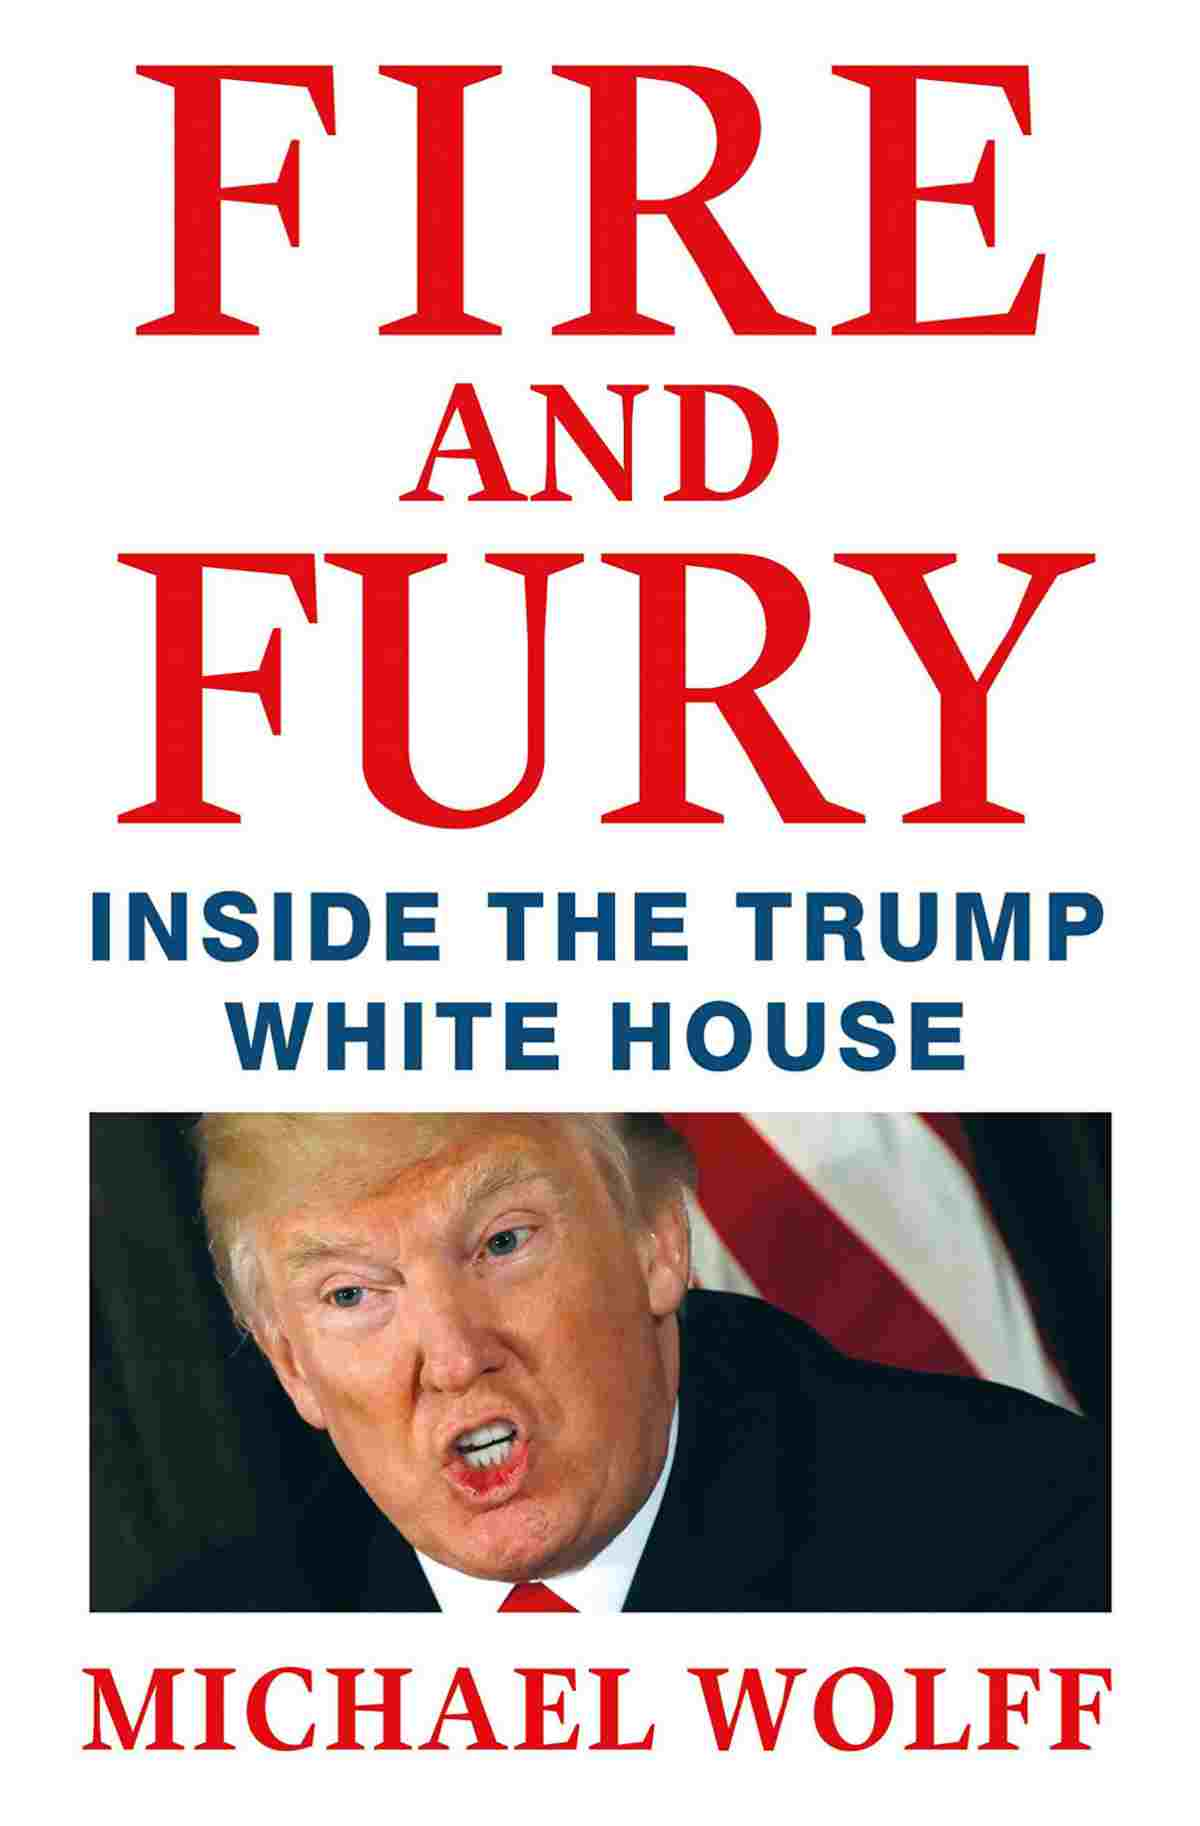 Fire and Fury: Inside the Trump White House   Bestselling Amazon Kindle Books Of 2018